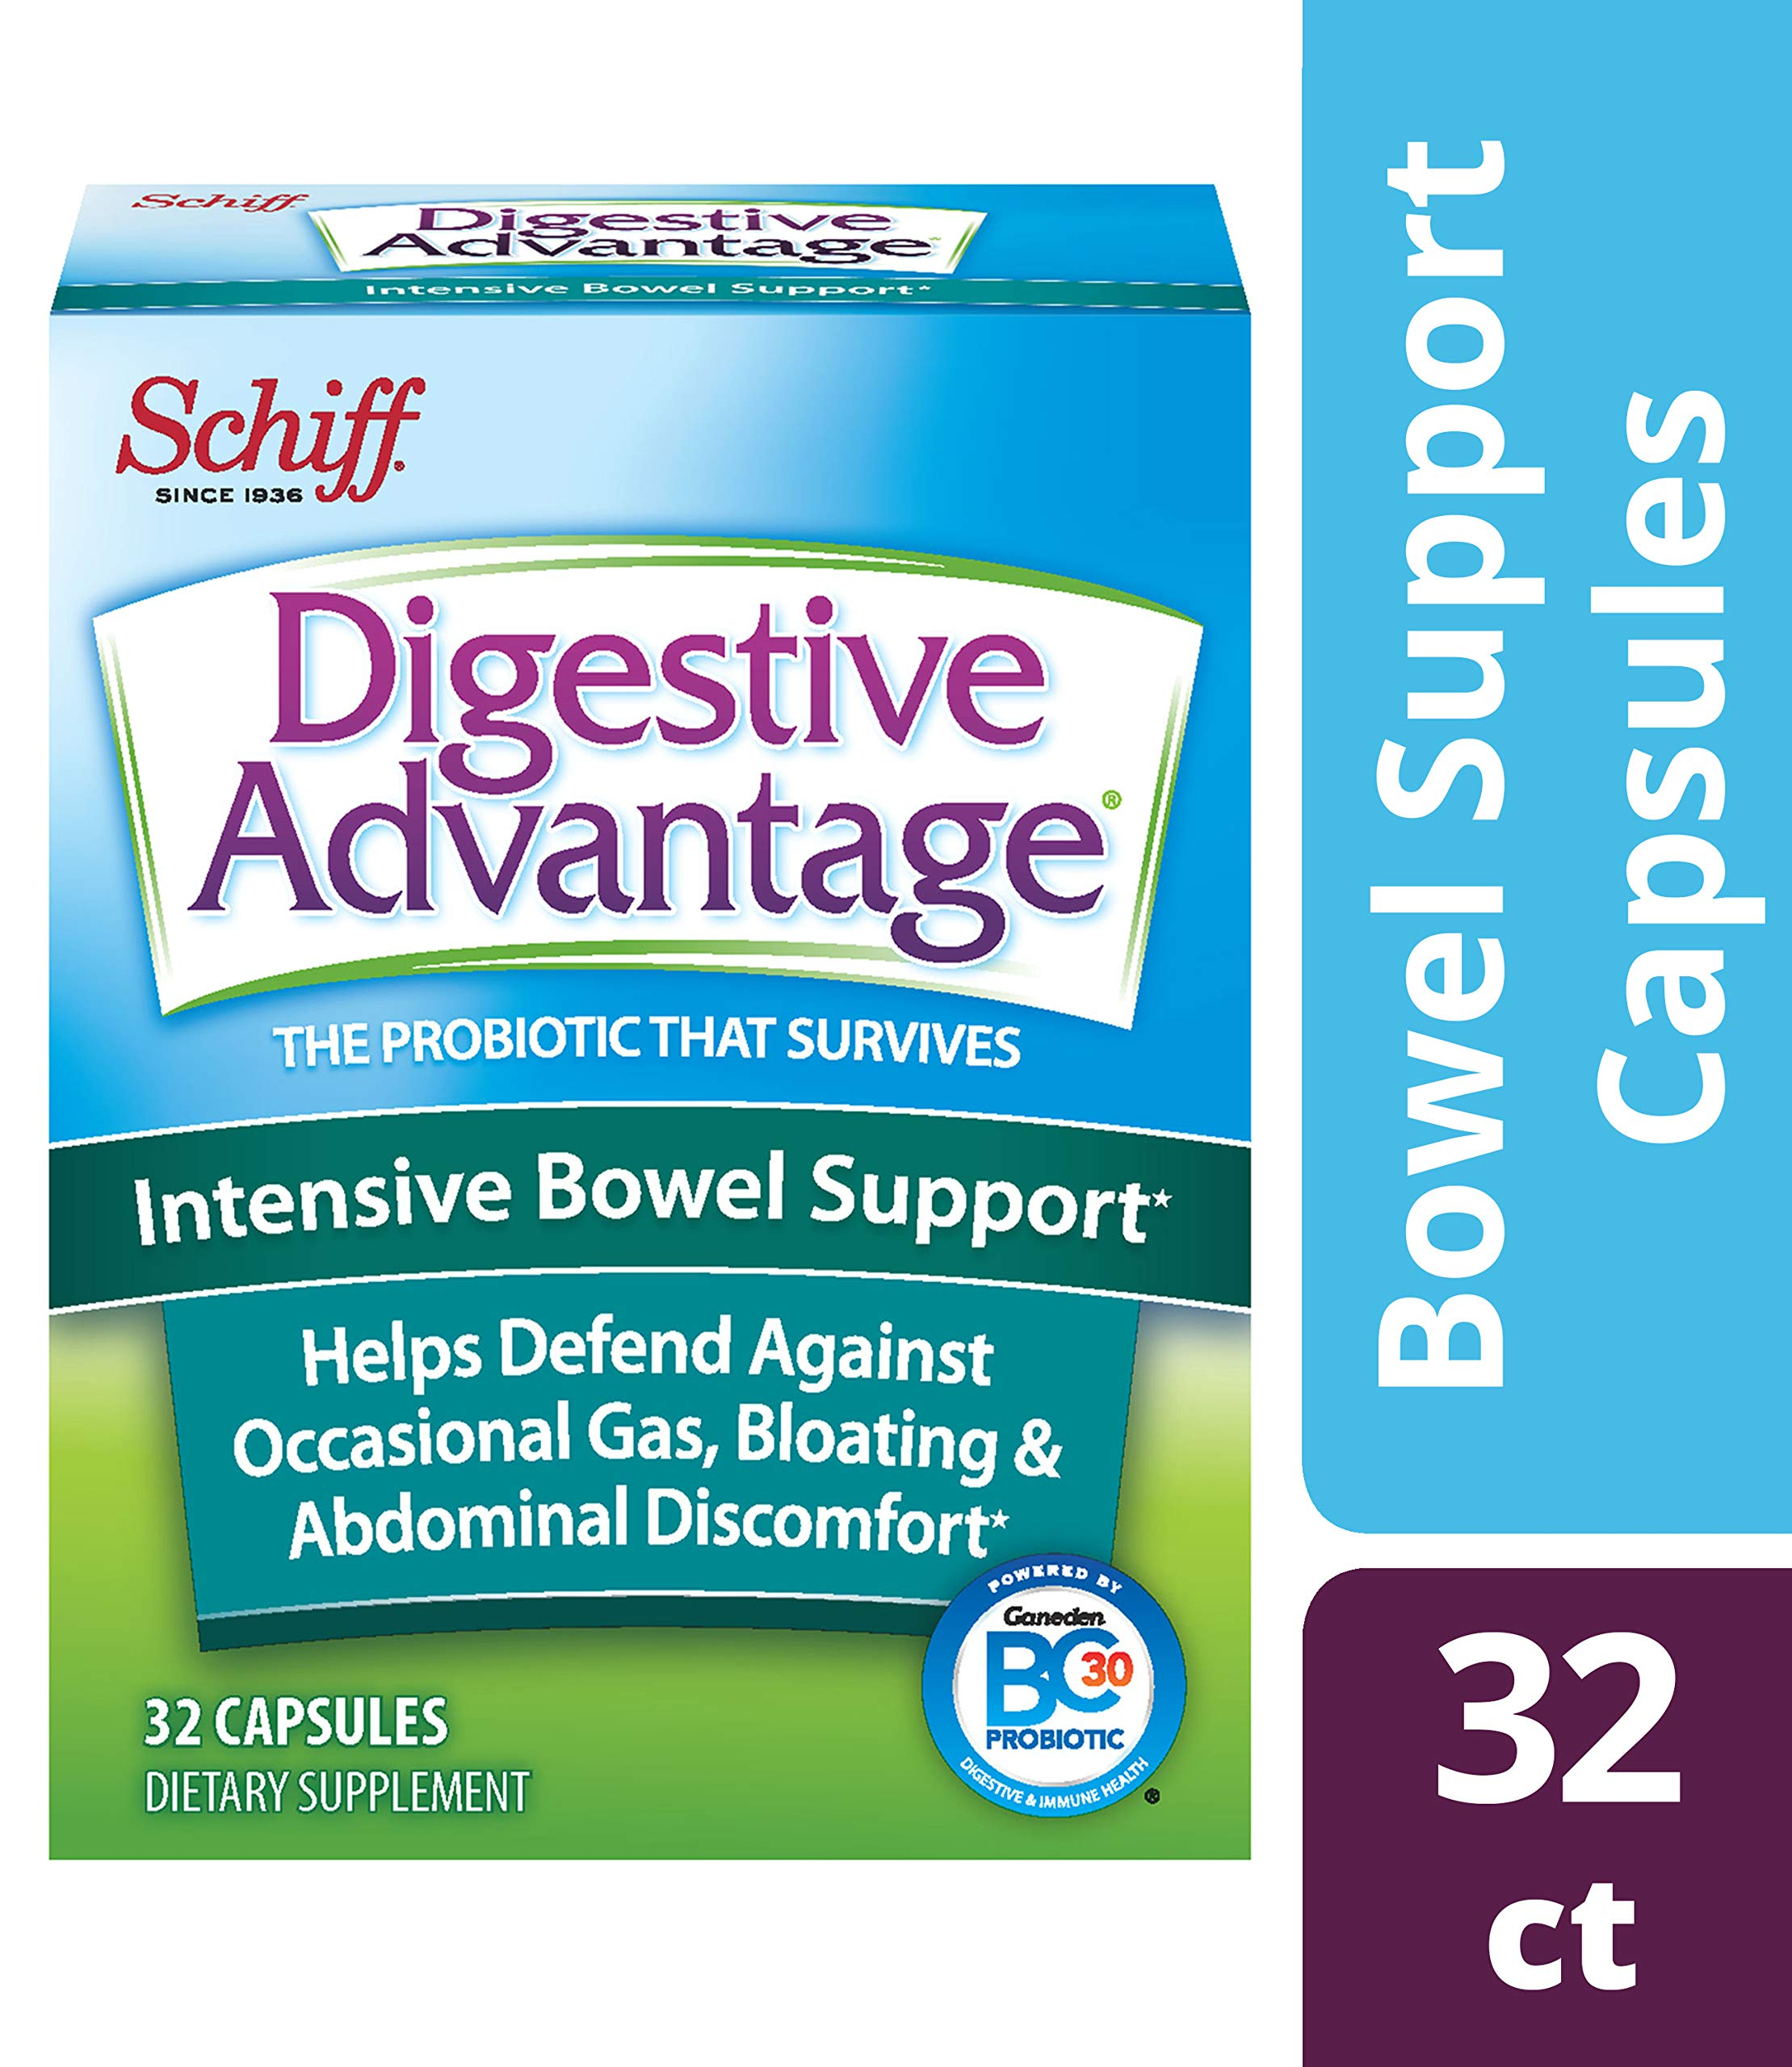 Intensive Bowel Support Probiotic Supplement - Digestive Advantage 32 Capsules, defends against gas, bloating